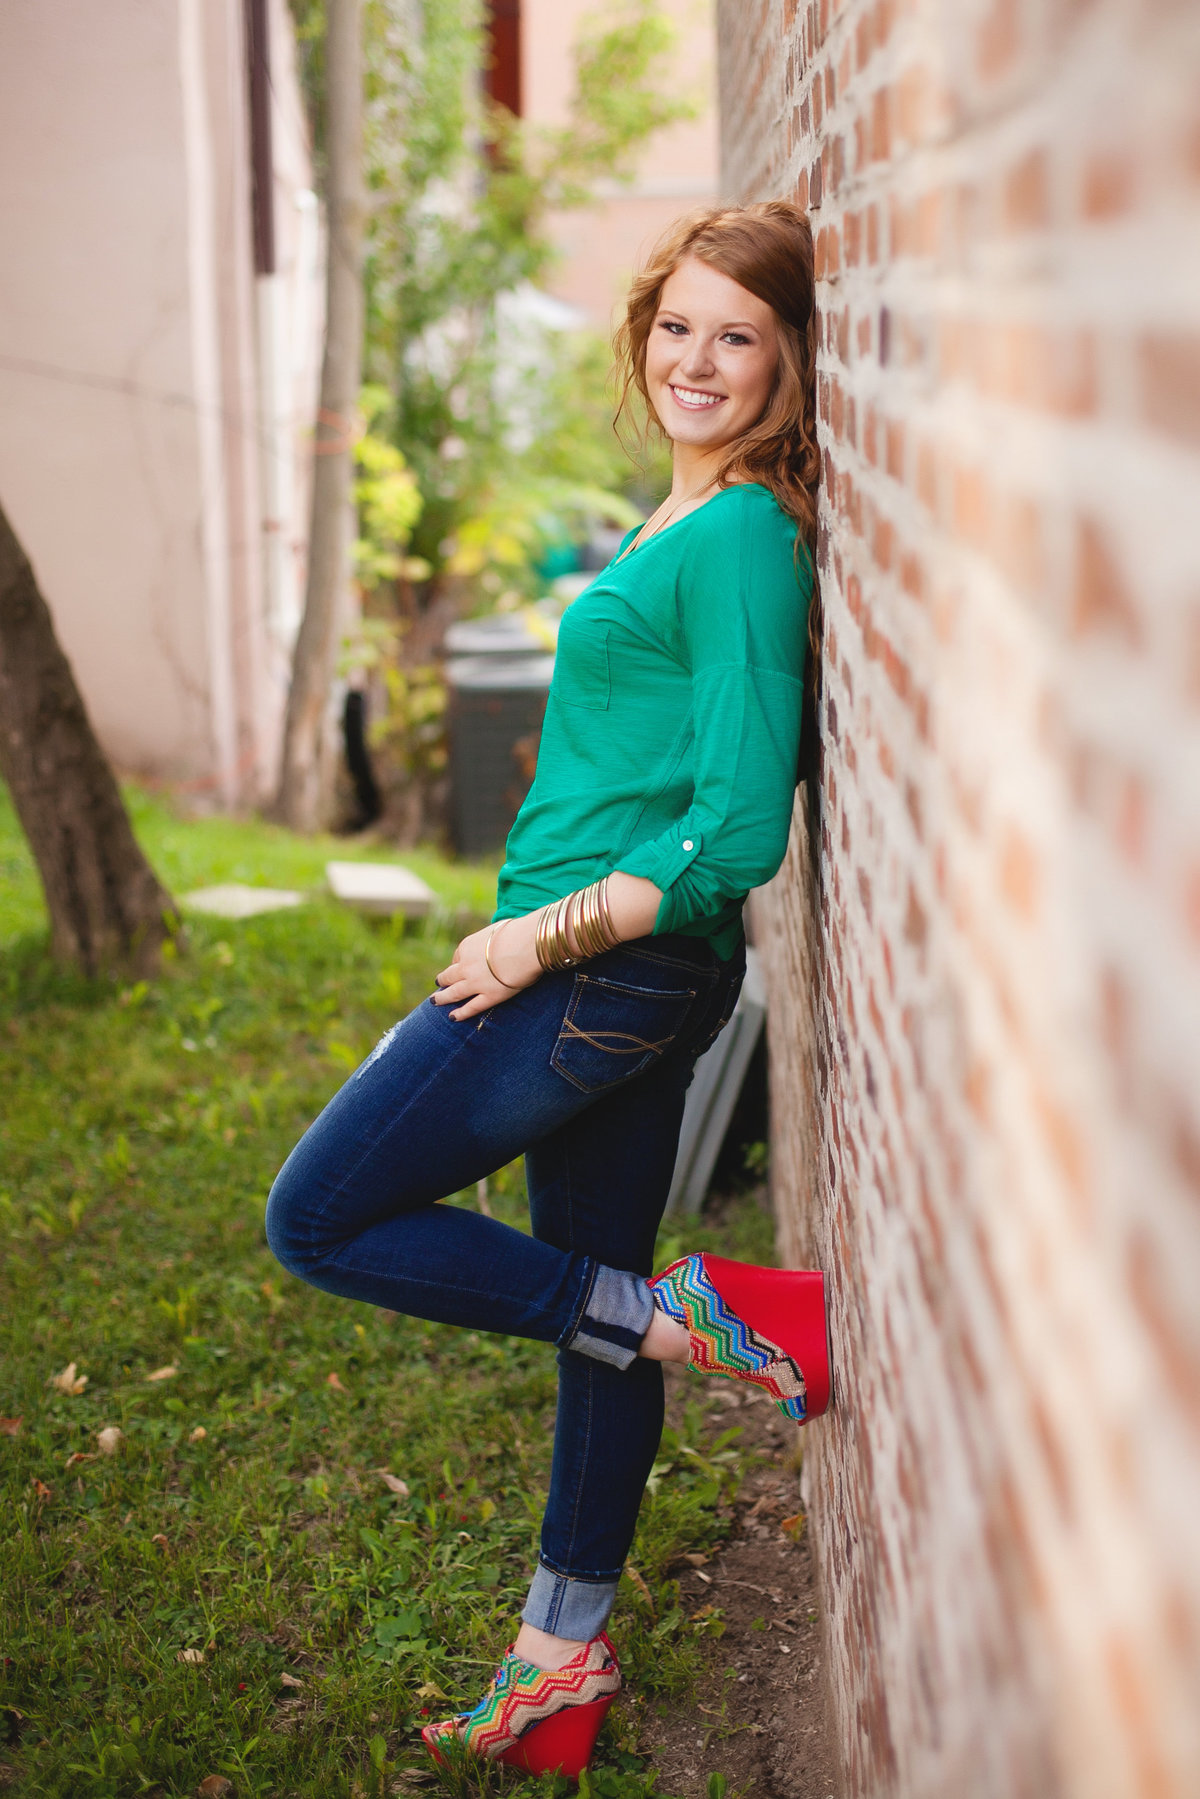 Boise-idaho-high-school-senior-photographer-lee-ann-norris010